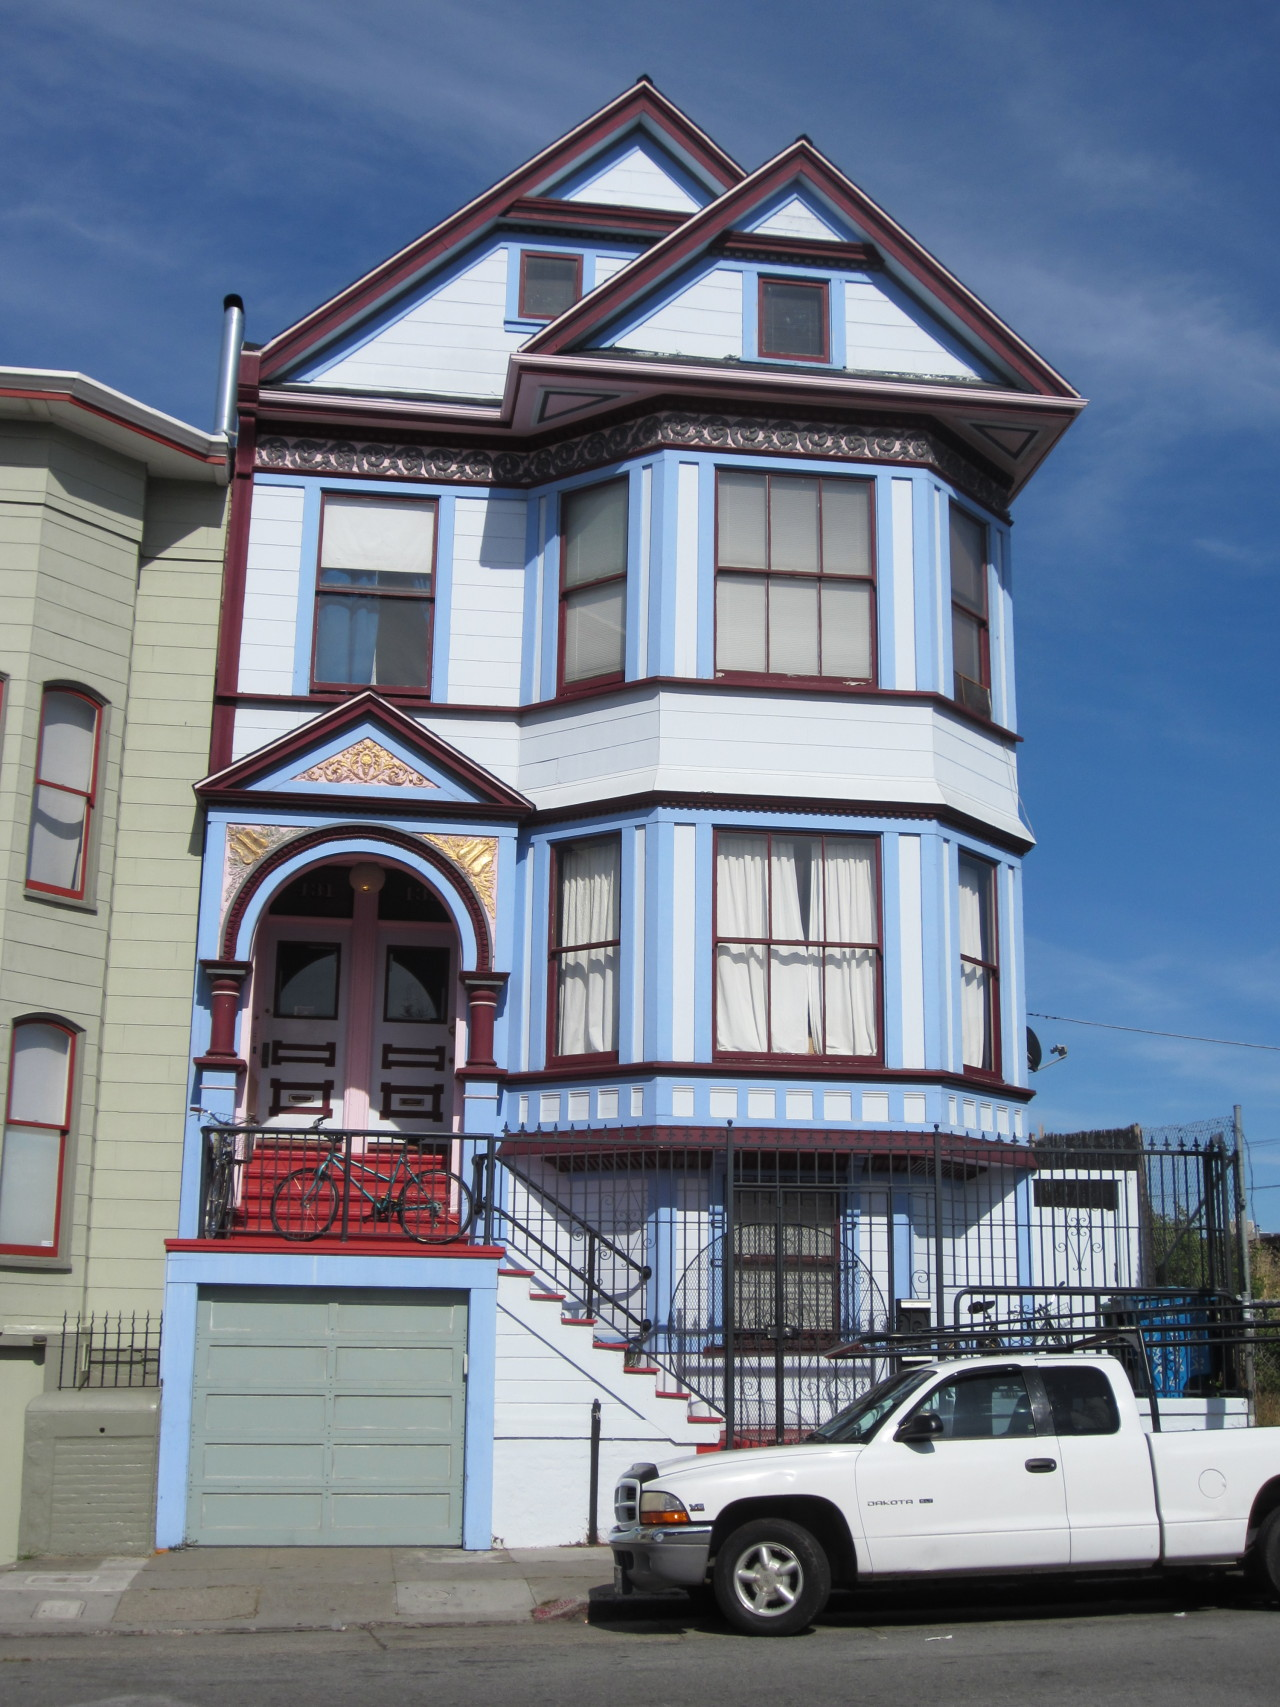 vintagebayareahomes:  Colorful Victorian, Mission District, San Francisco CA.